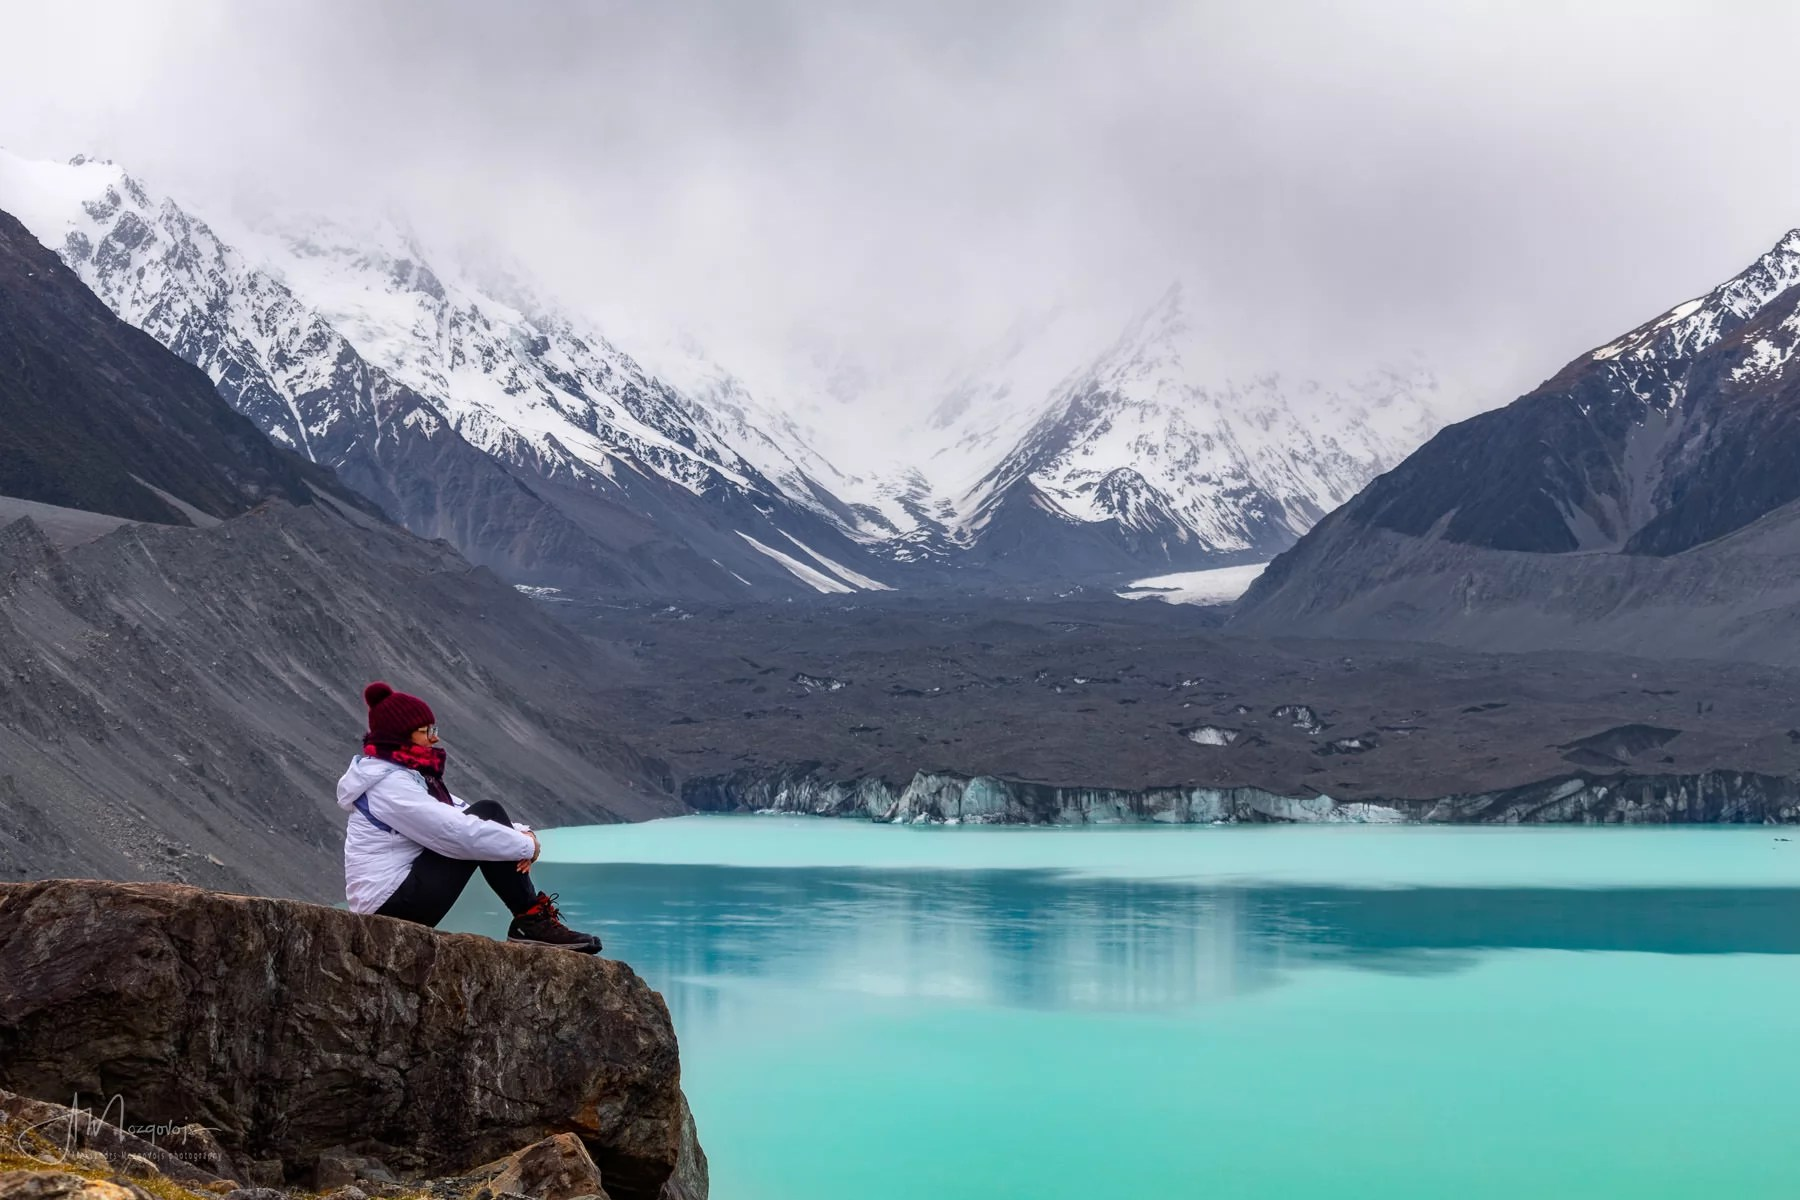 Mount Cook should be on any New Zealand Itinerary